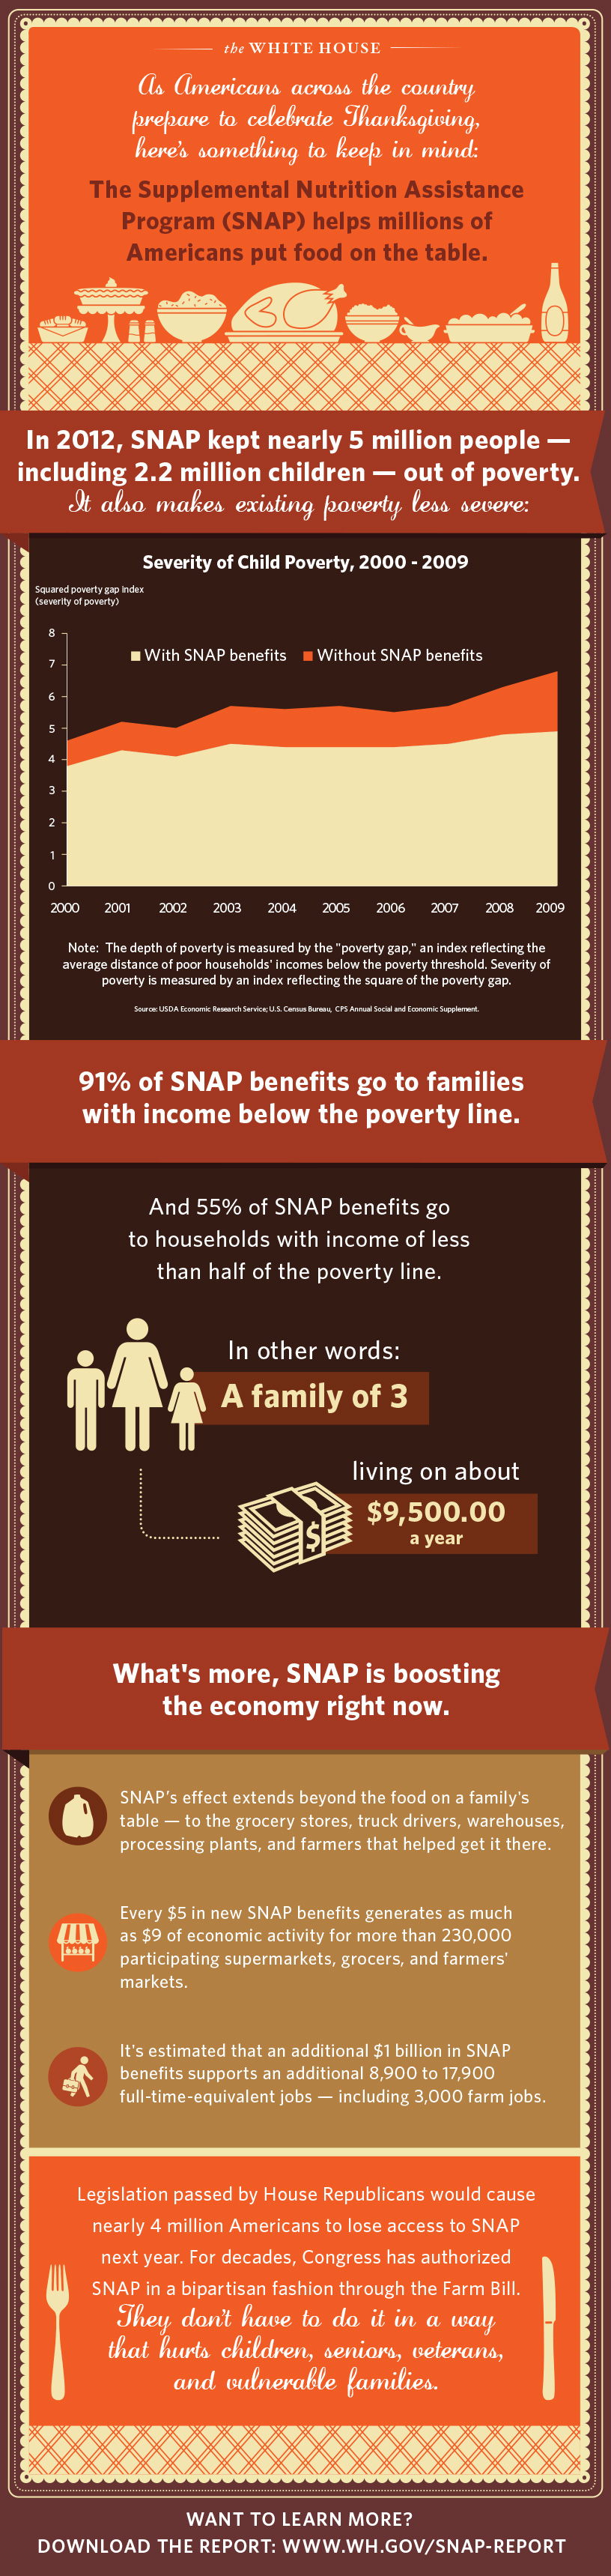 Something to think about this Thanksgiving: SNAP keeps millions out of poverty.